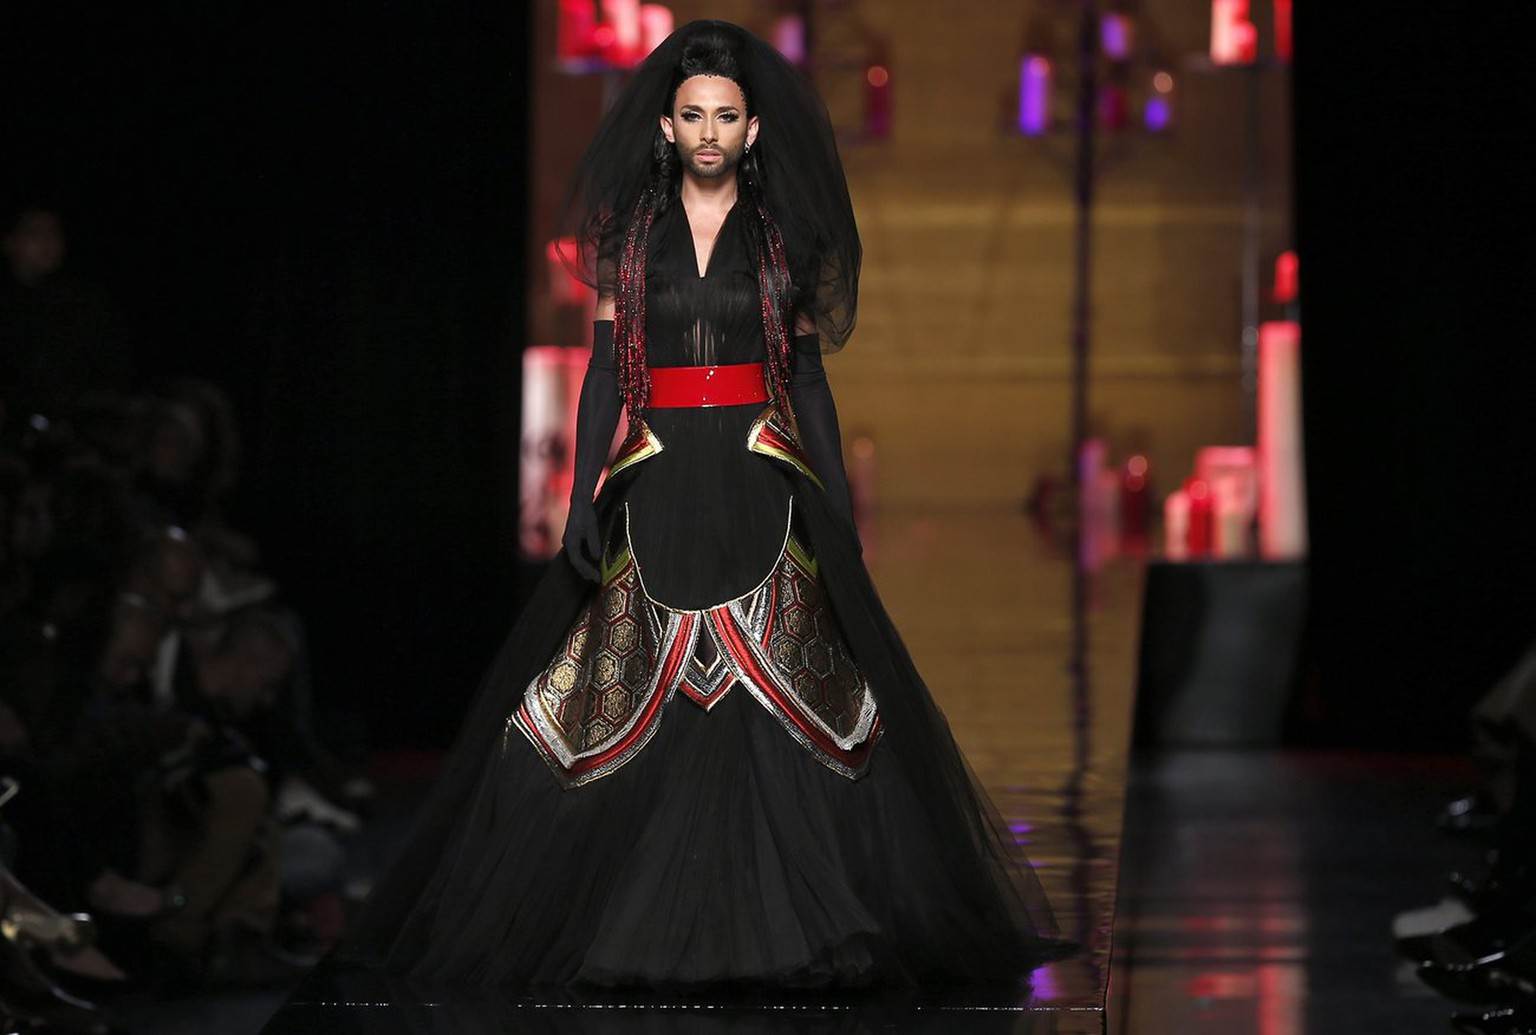 epa04307492 Austrian singer and Eurovision winner Conchita Wurst presents a creation from the Haute Couture Fall-Winter 2014/15 collection by French designer Jean-Paul Gaultier during the Paris Fashion Week, in Paris, France, 09 July 2014. The presentation of the Women's Haute Couture collections runs from 06 to 10 July.  EPA/IAN LANGSDON